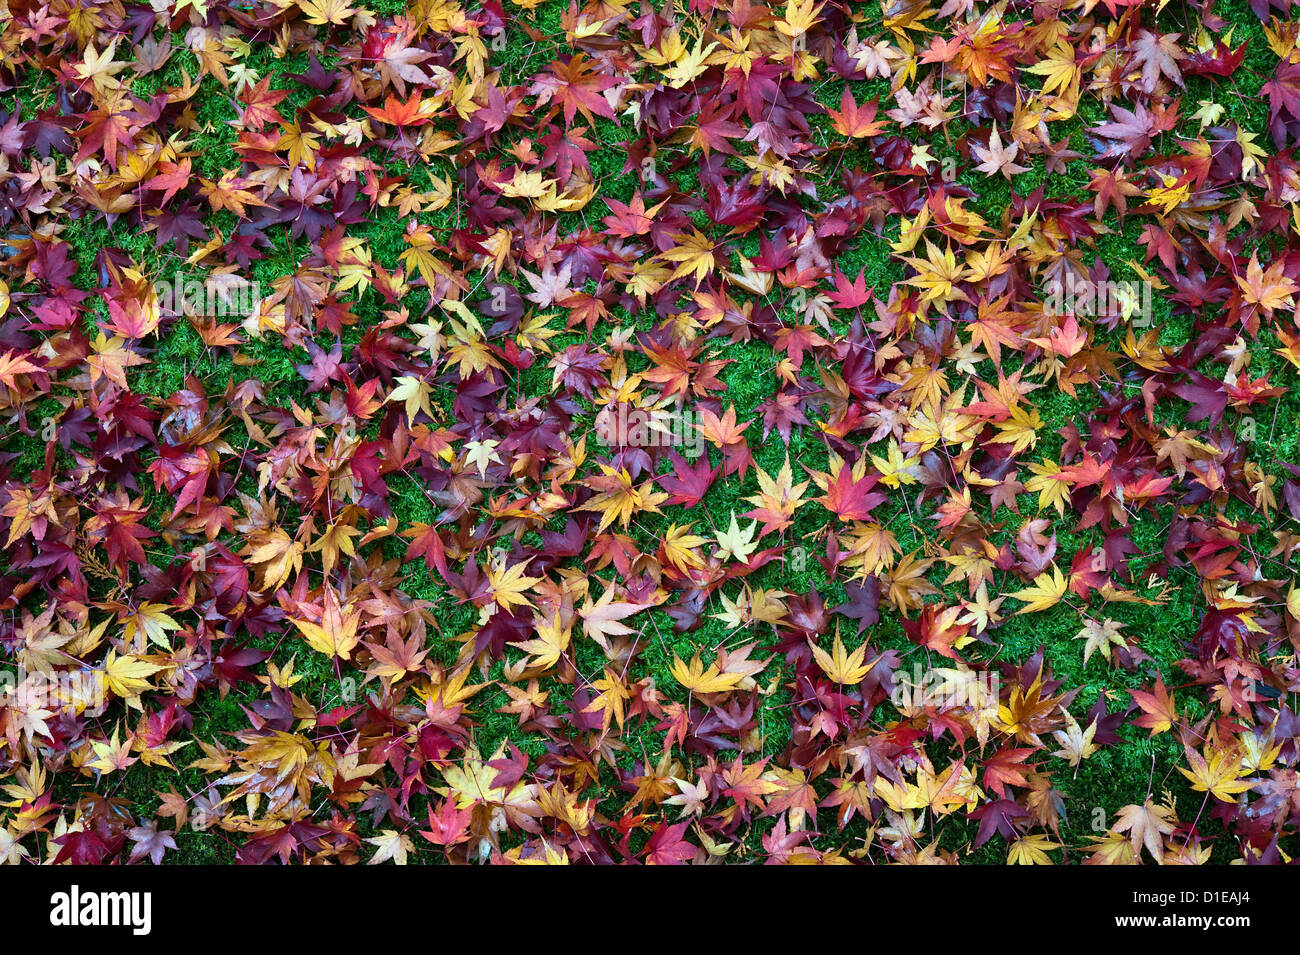 Koto-in zen temple, Daitoku-ji, Kyoto, Japan. Maple leaves cover the mossy ground in autumn - Stock Image